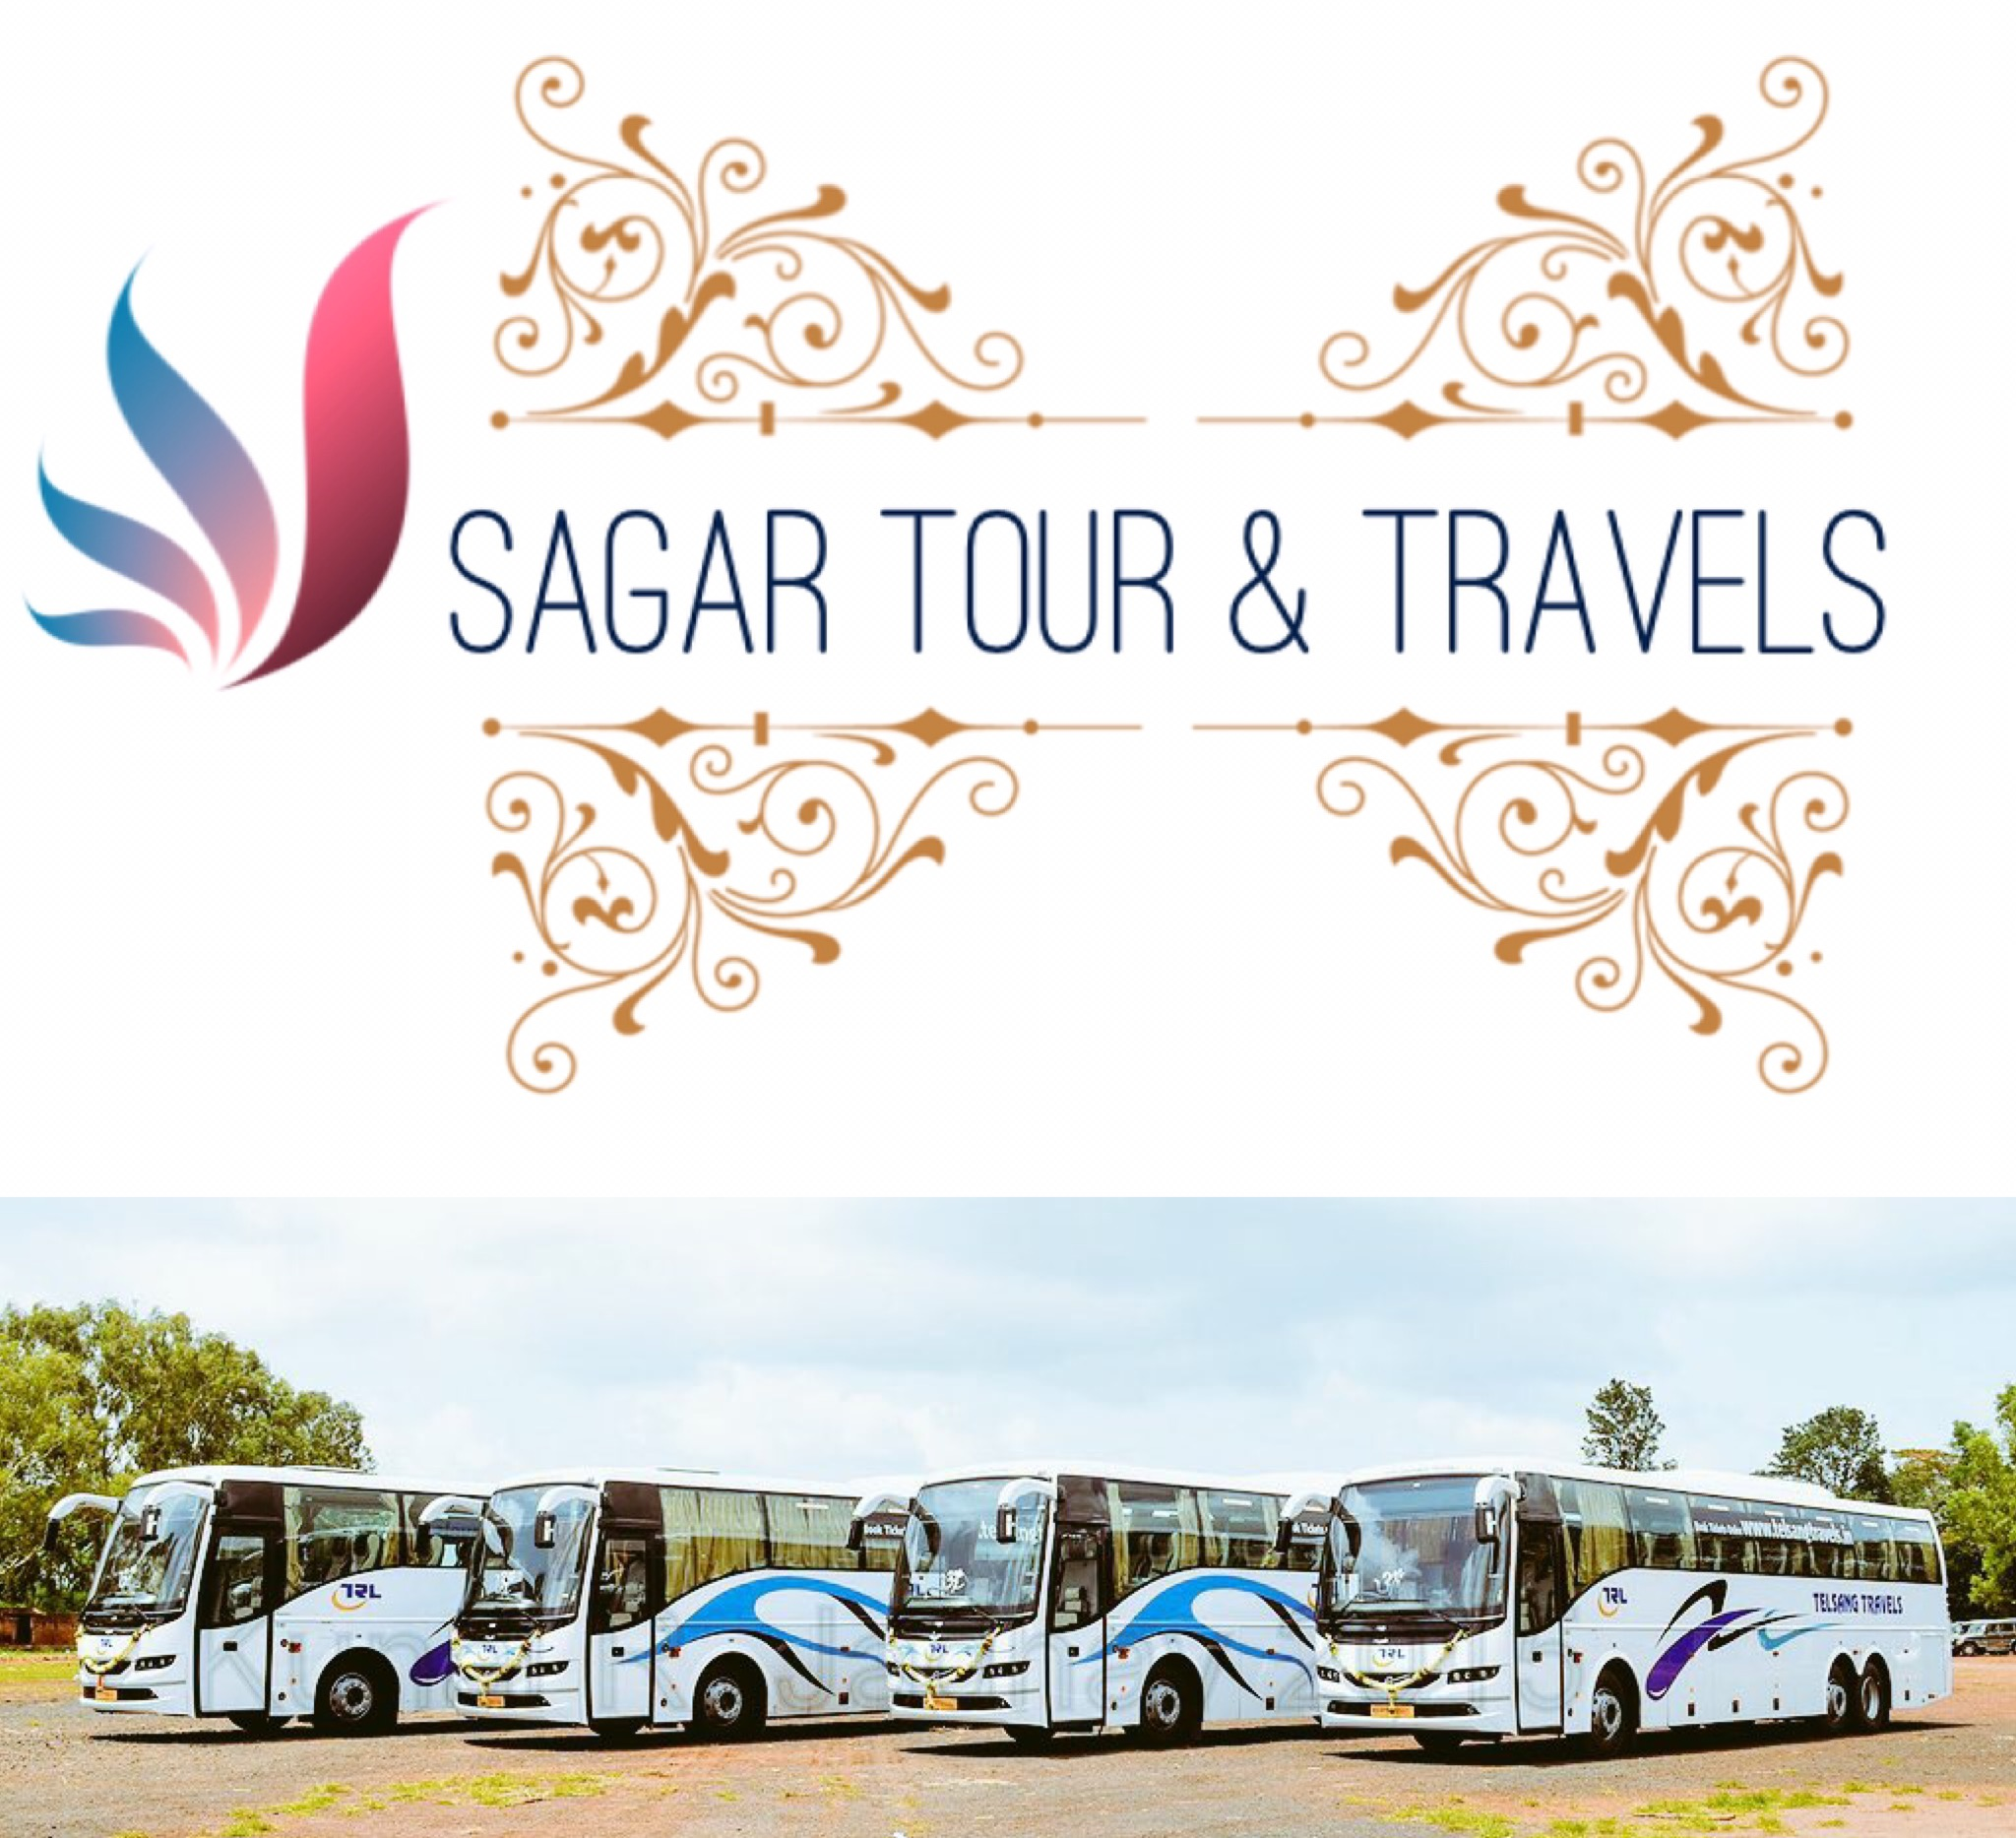 bus on rent, bus on hire, bus on hire in delhi , bus hire delhi